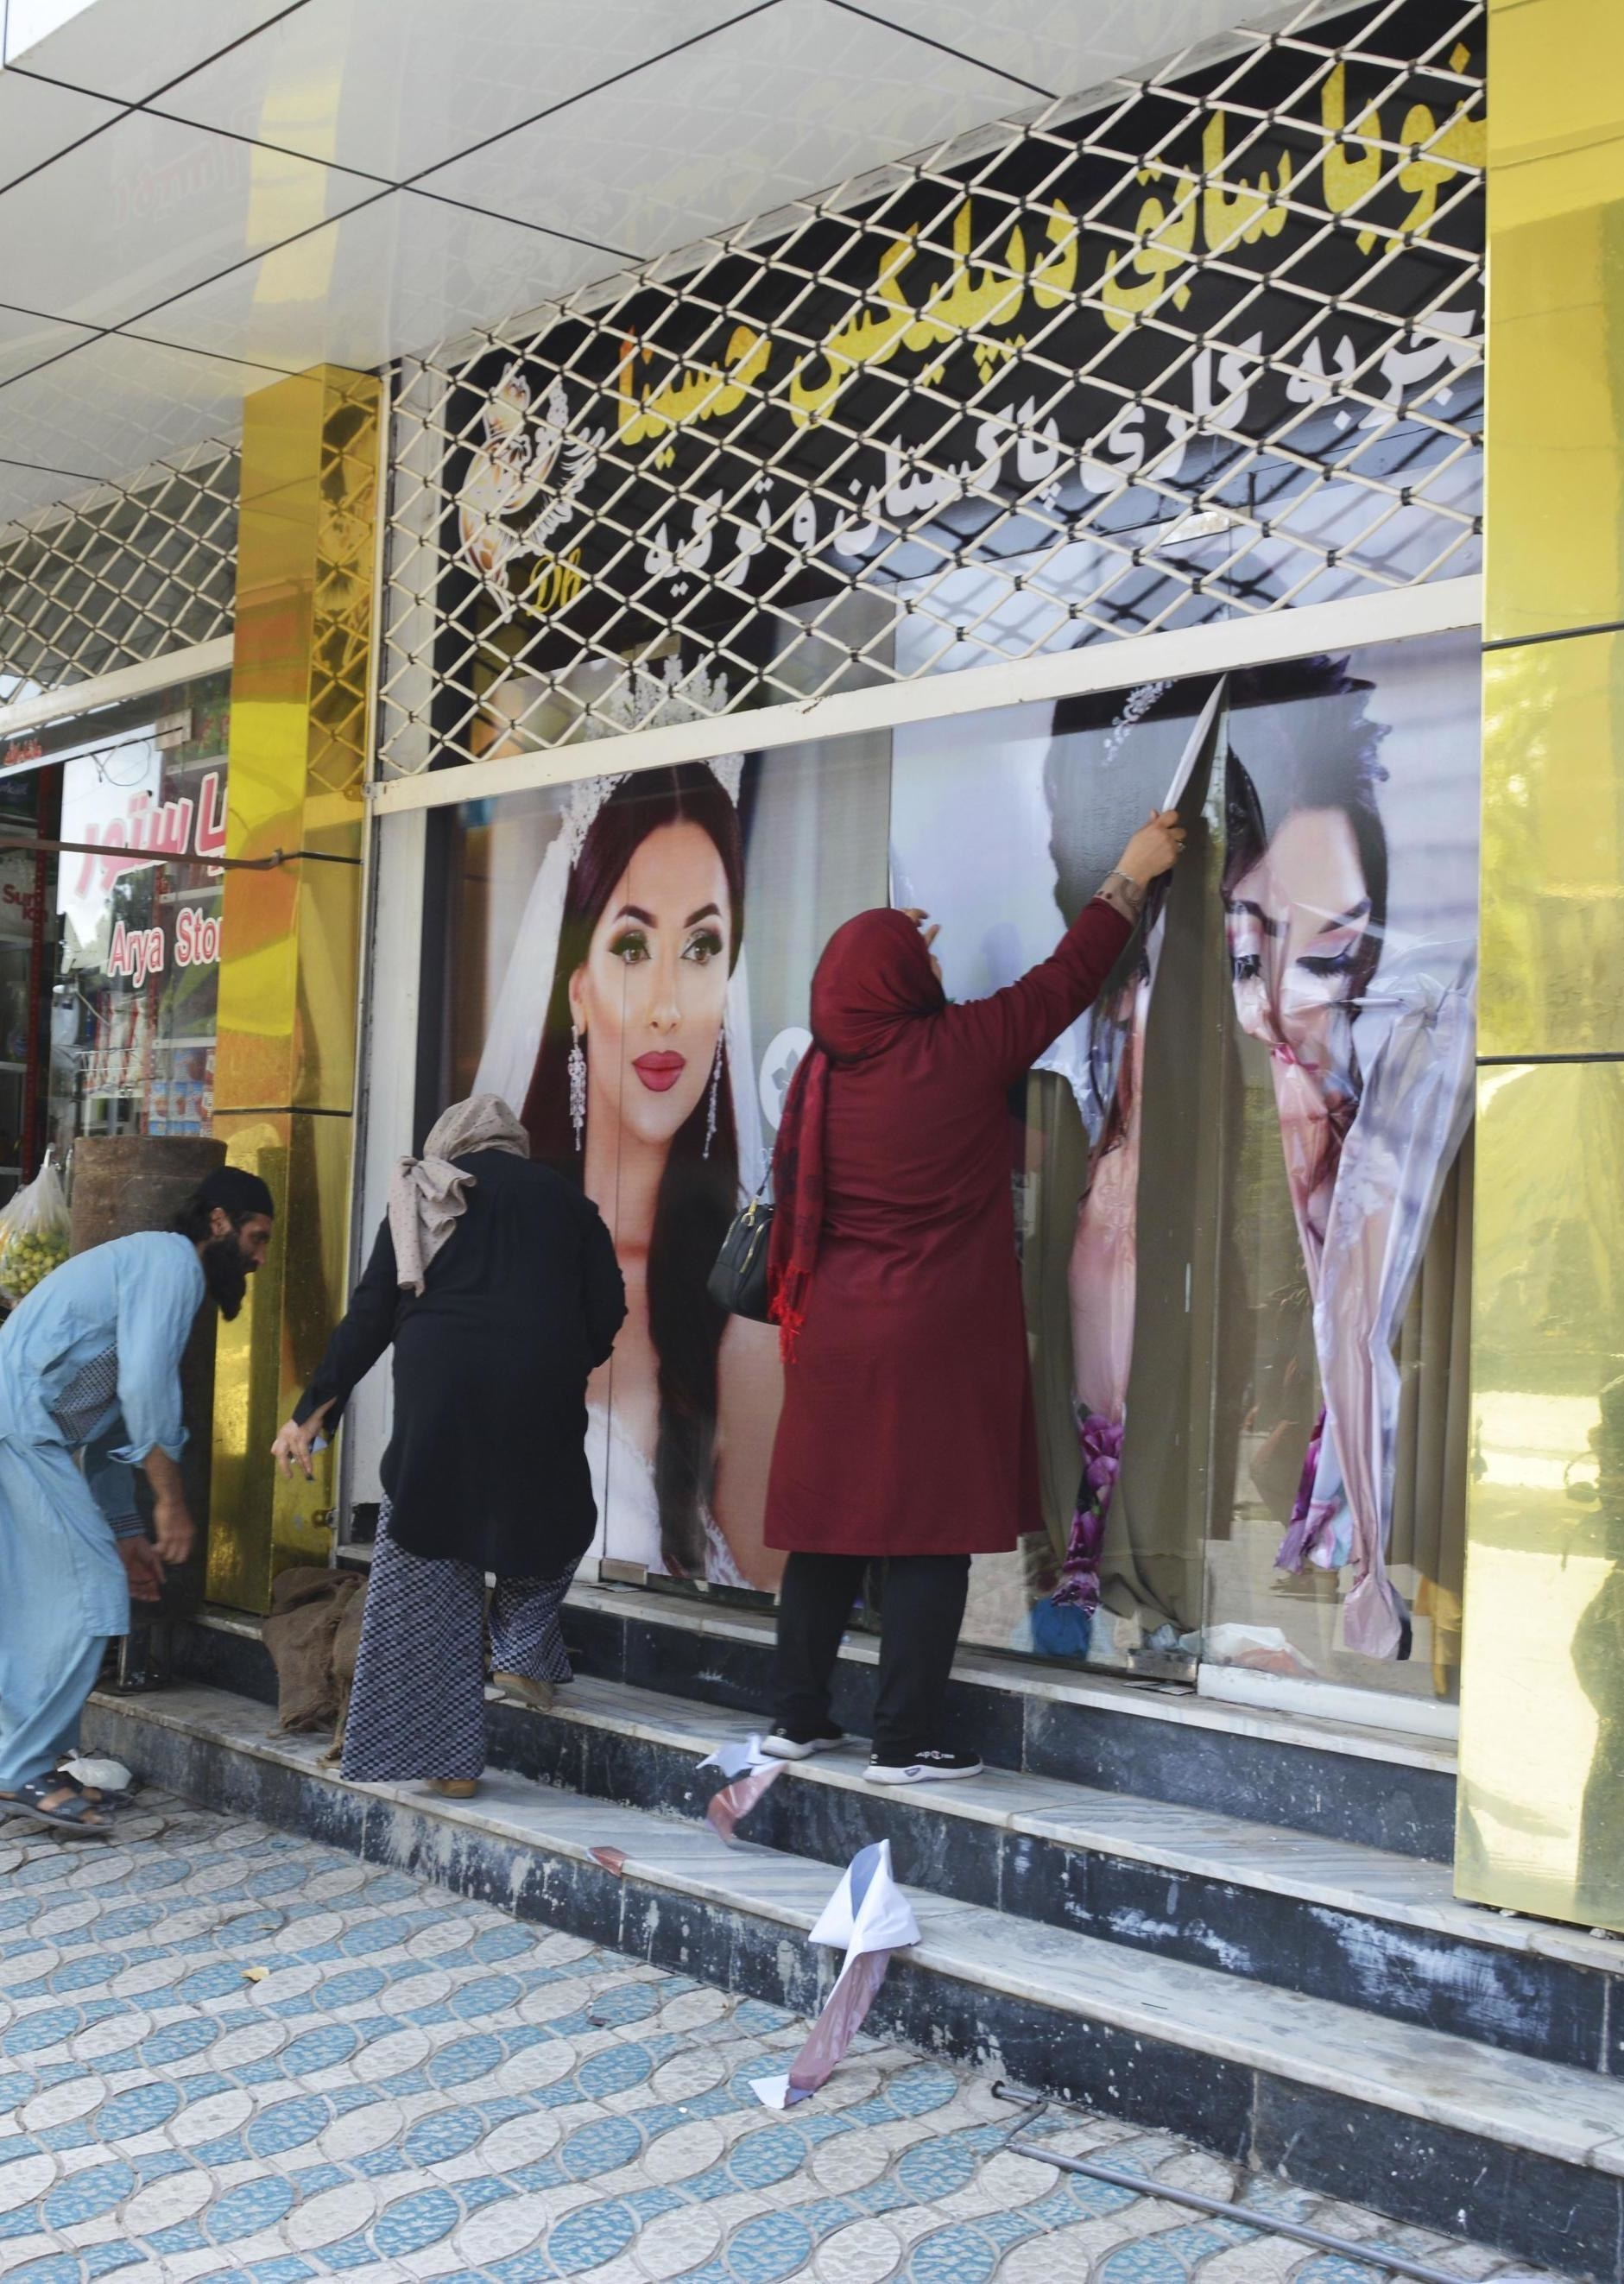 Workers at a beauty salon strip large photos of women off the wall in Kabul